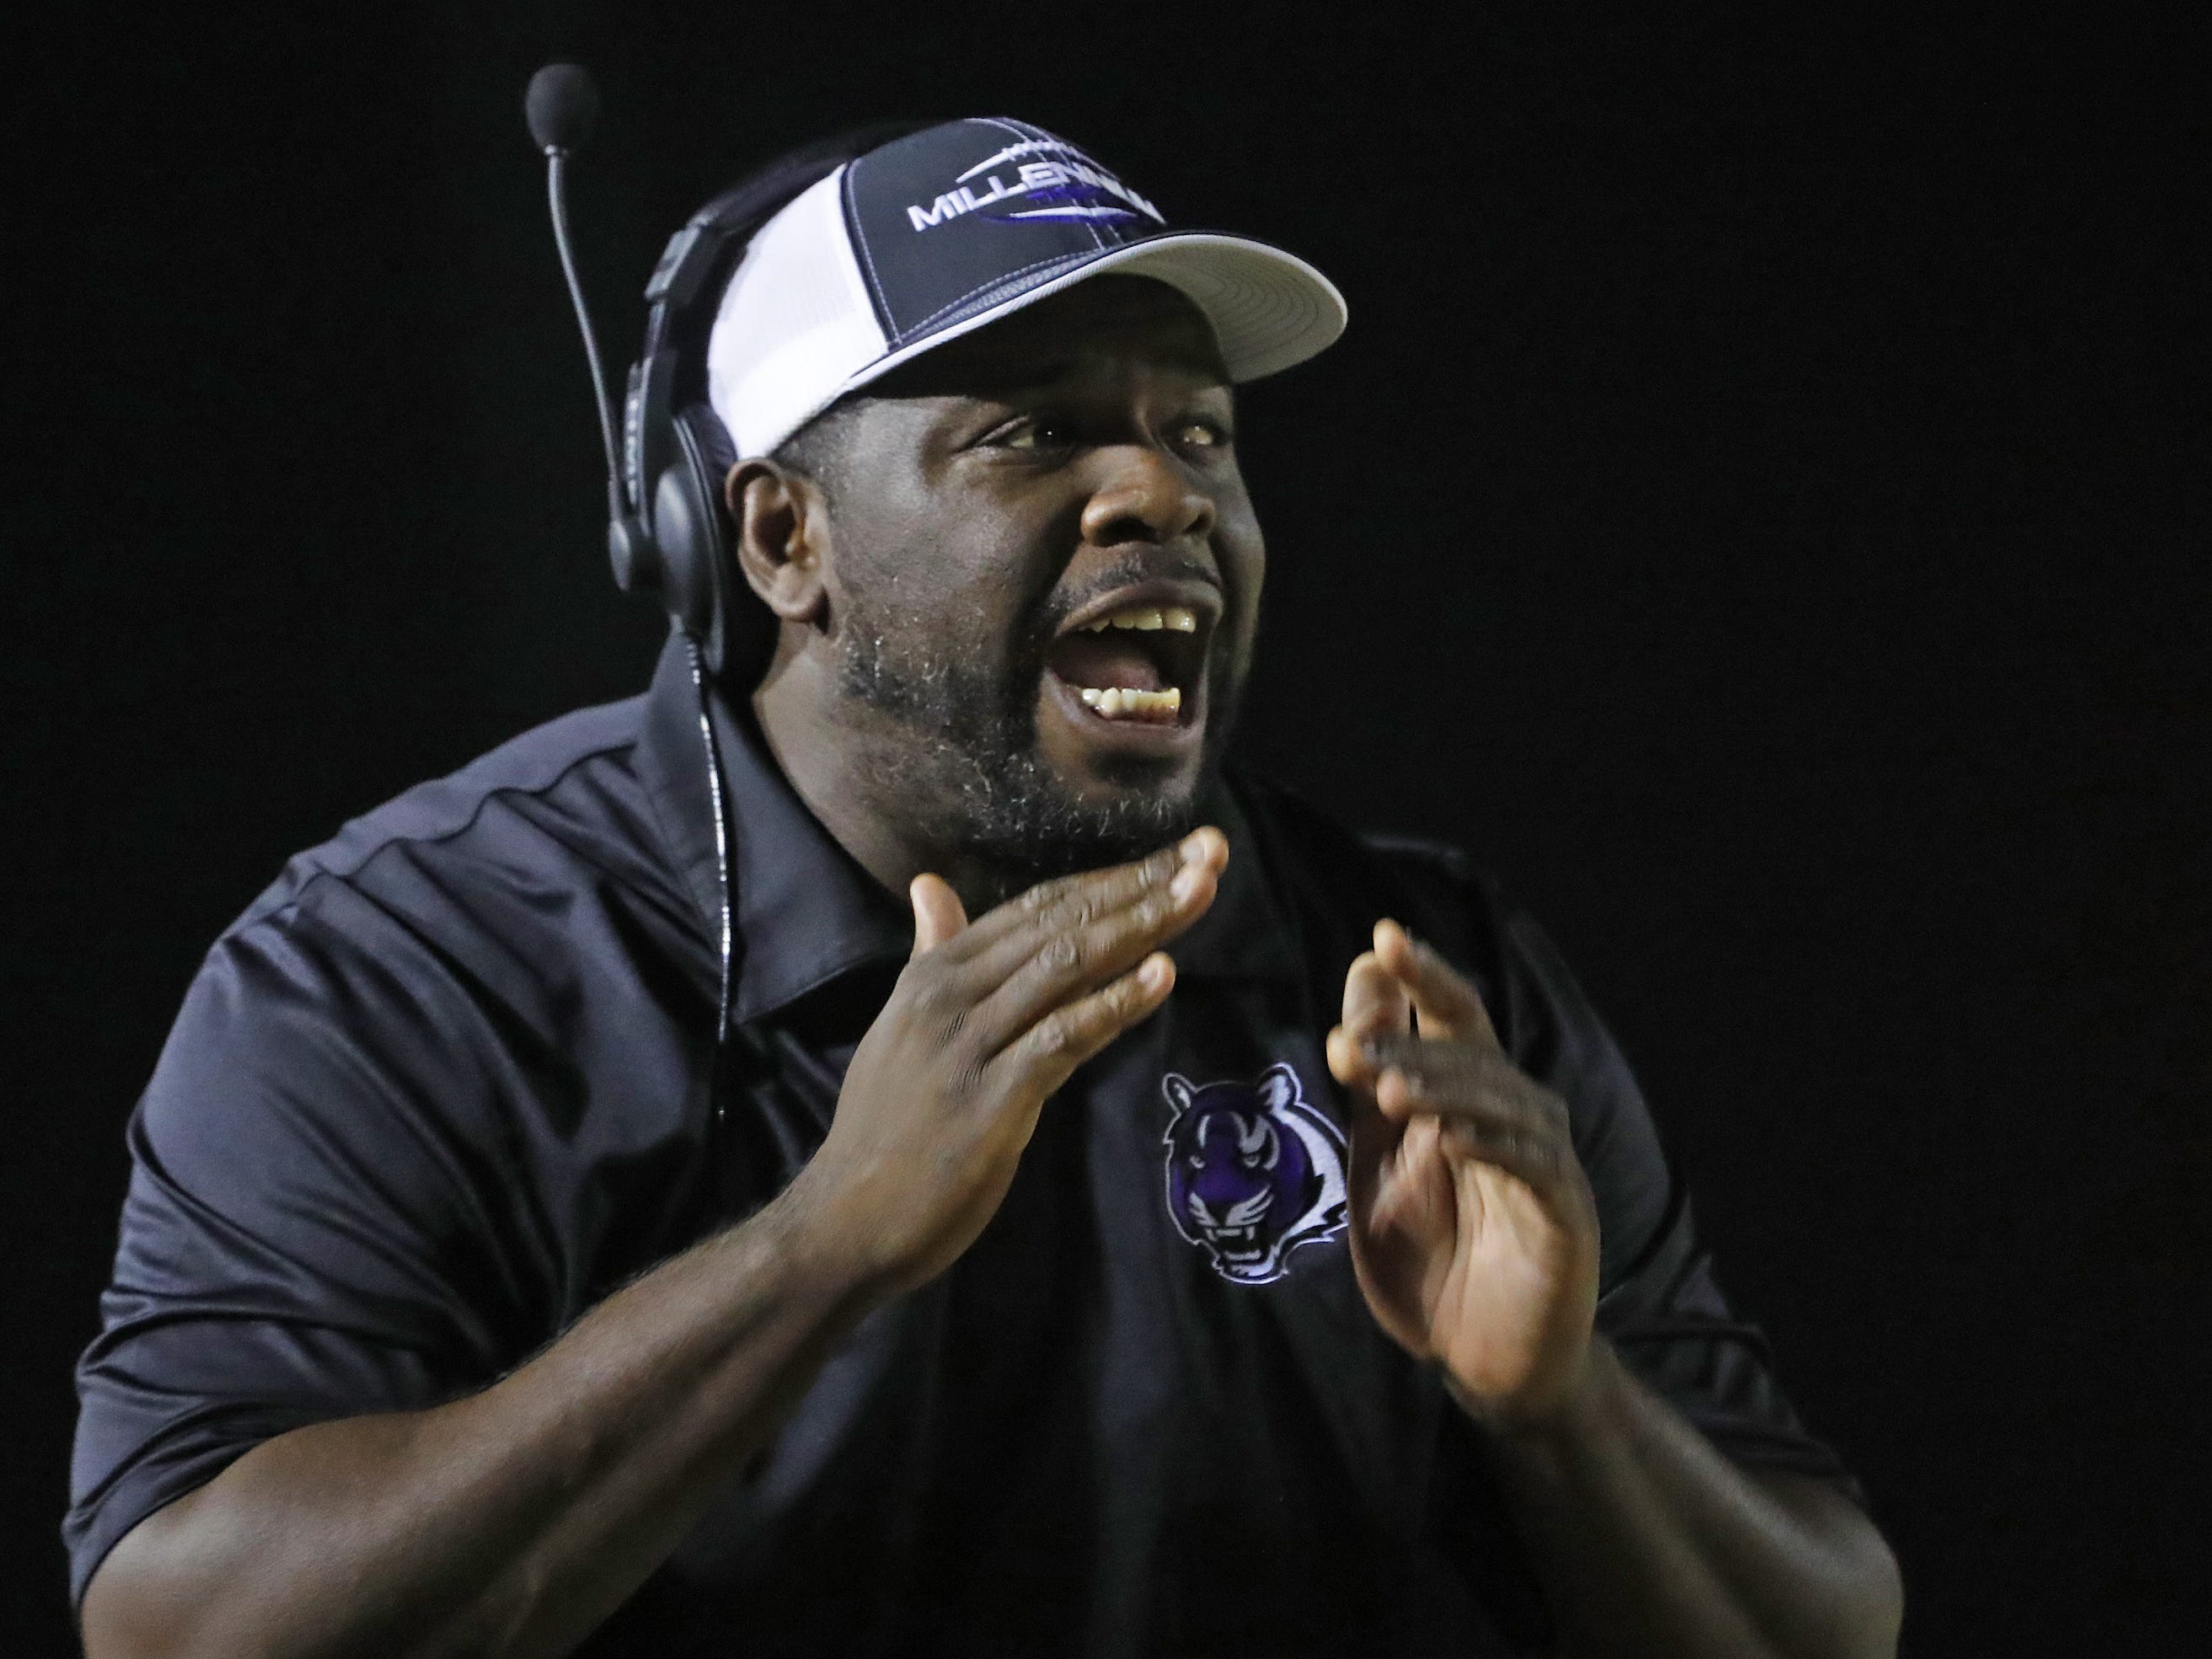 Millennium's head coach Lamar Early yells to his team during the first round of the AIA State Football Playoffs against Flowing Wells at Millennium High School in Goodyear, Ariz. on Nov. 2, 2018.